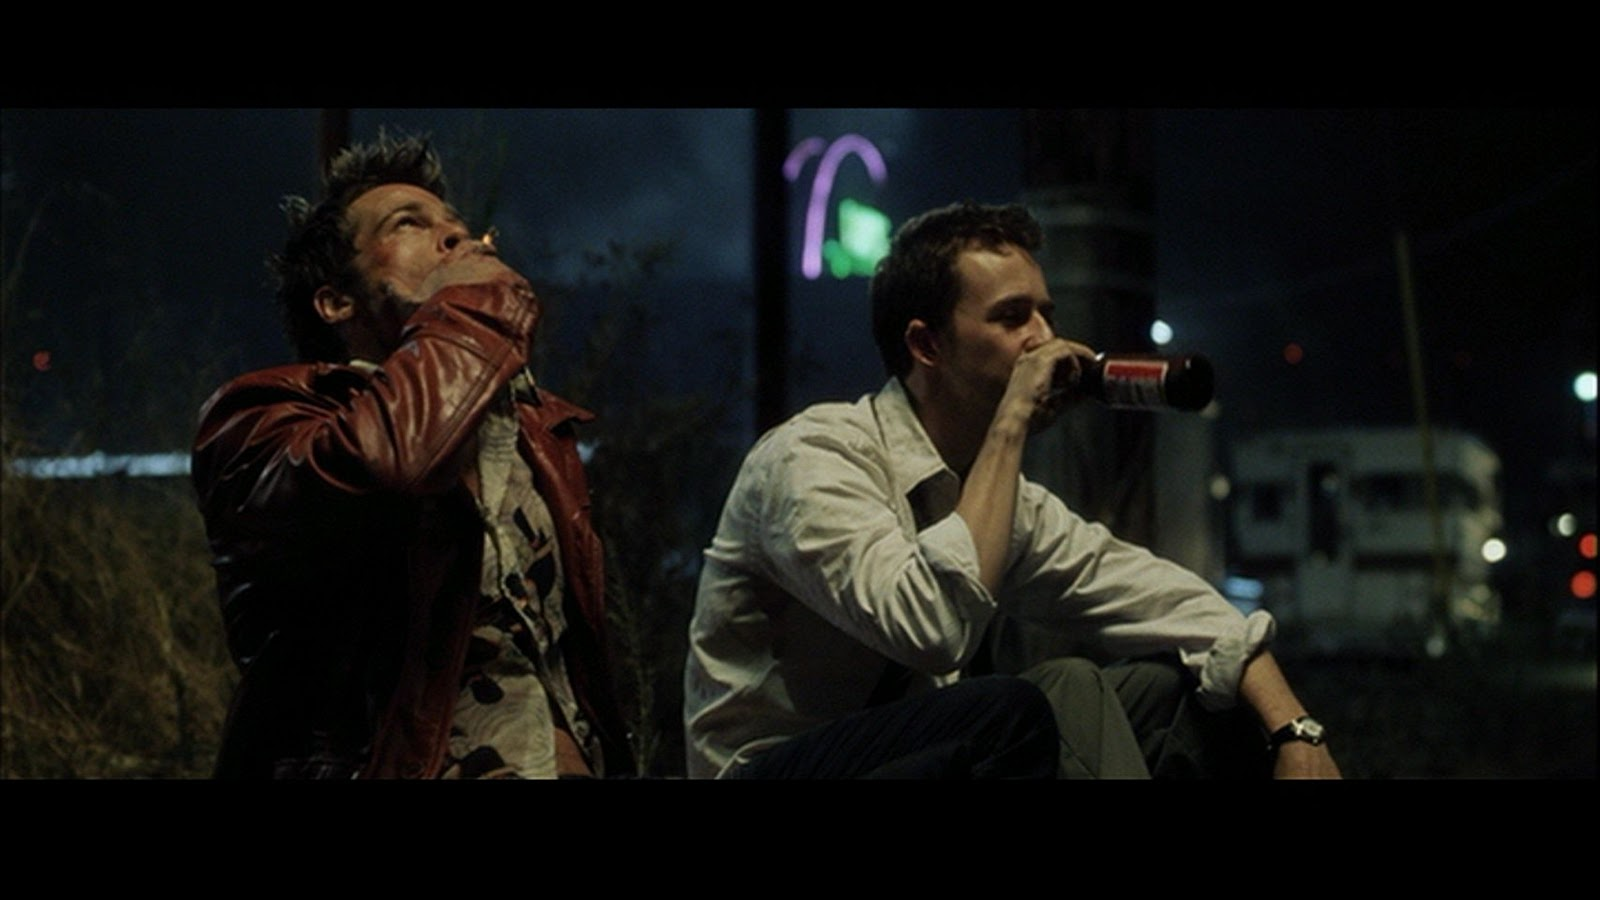 Fight club consumerism scene